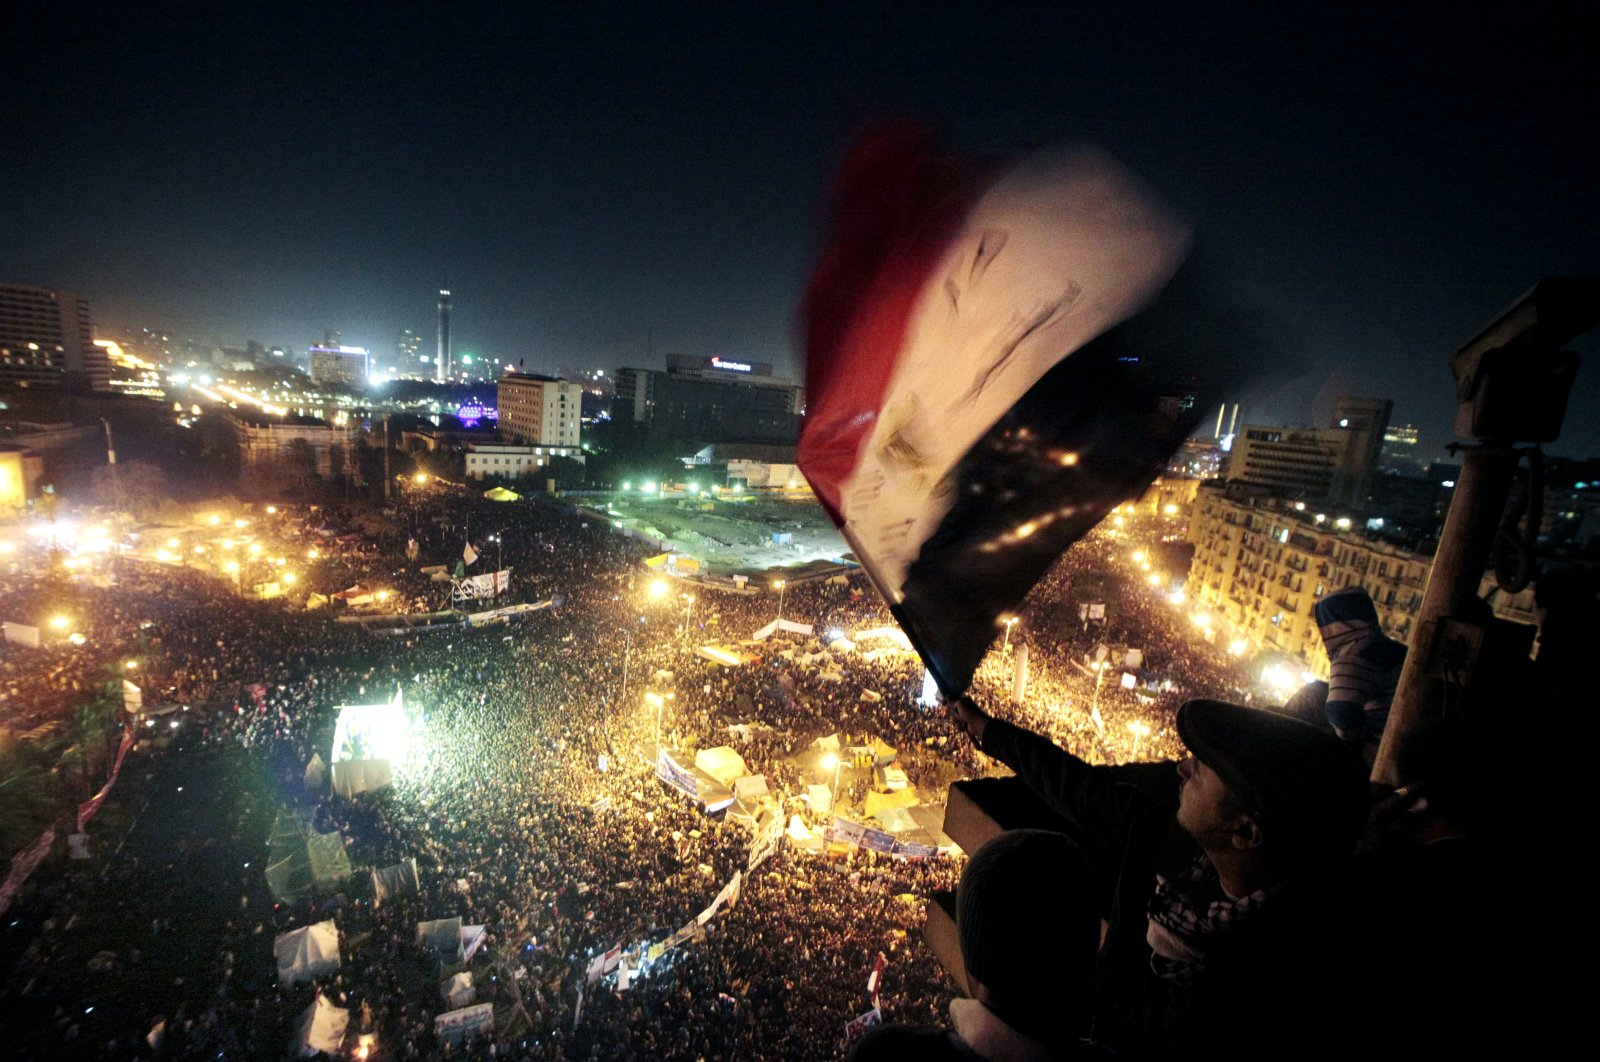 People wave flags in Tahrir Square to mark the first anniversary of the popular uprising that led to the quick ouster of autocrat President Hosni Mubarak, in Cairo, Egypt on Jan. 25, 2012 (AP File Photo)